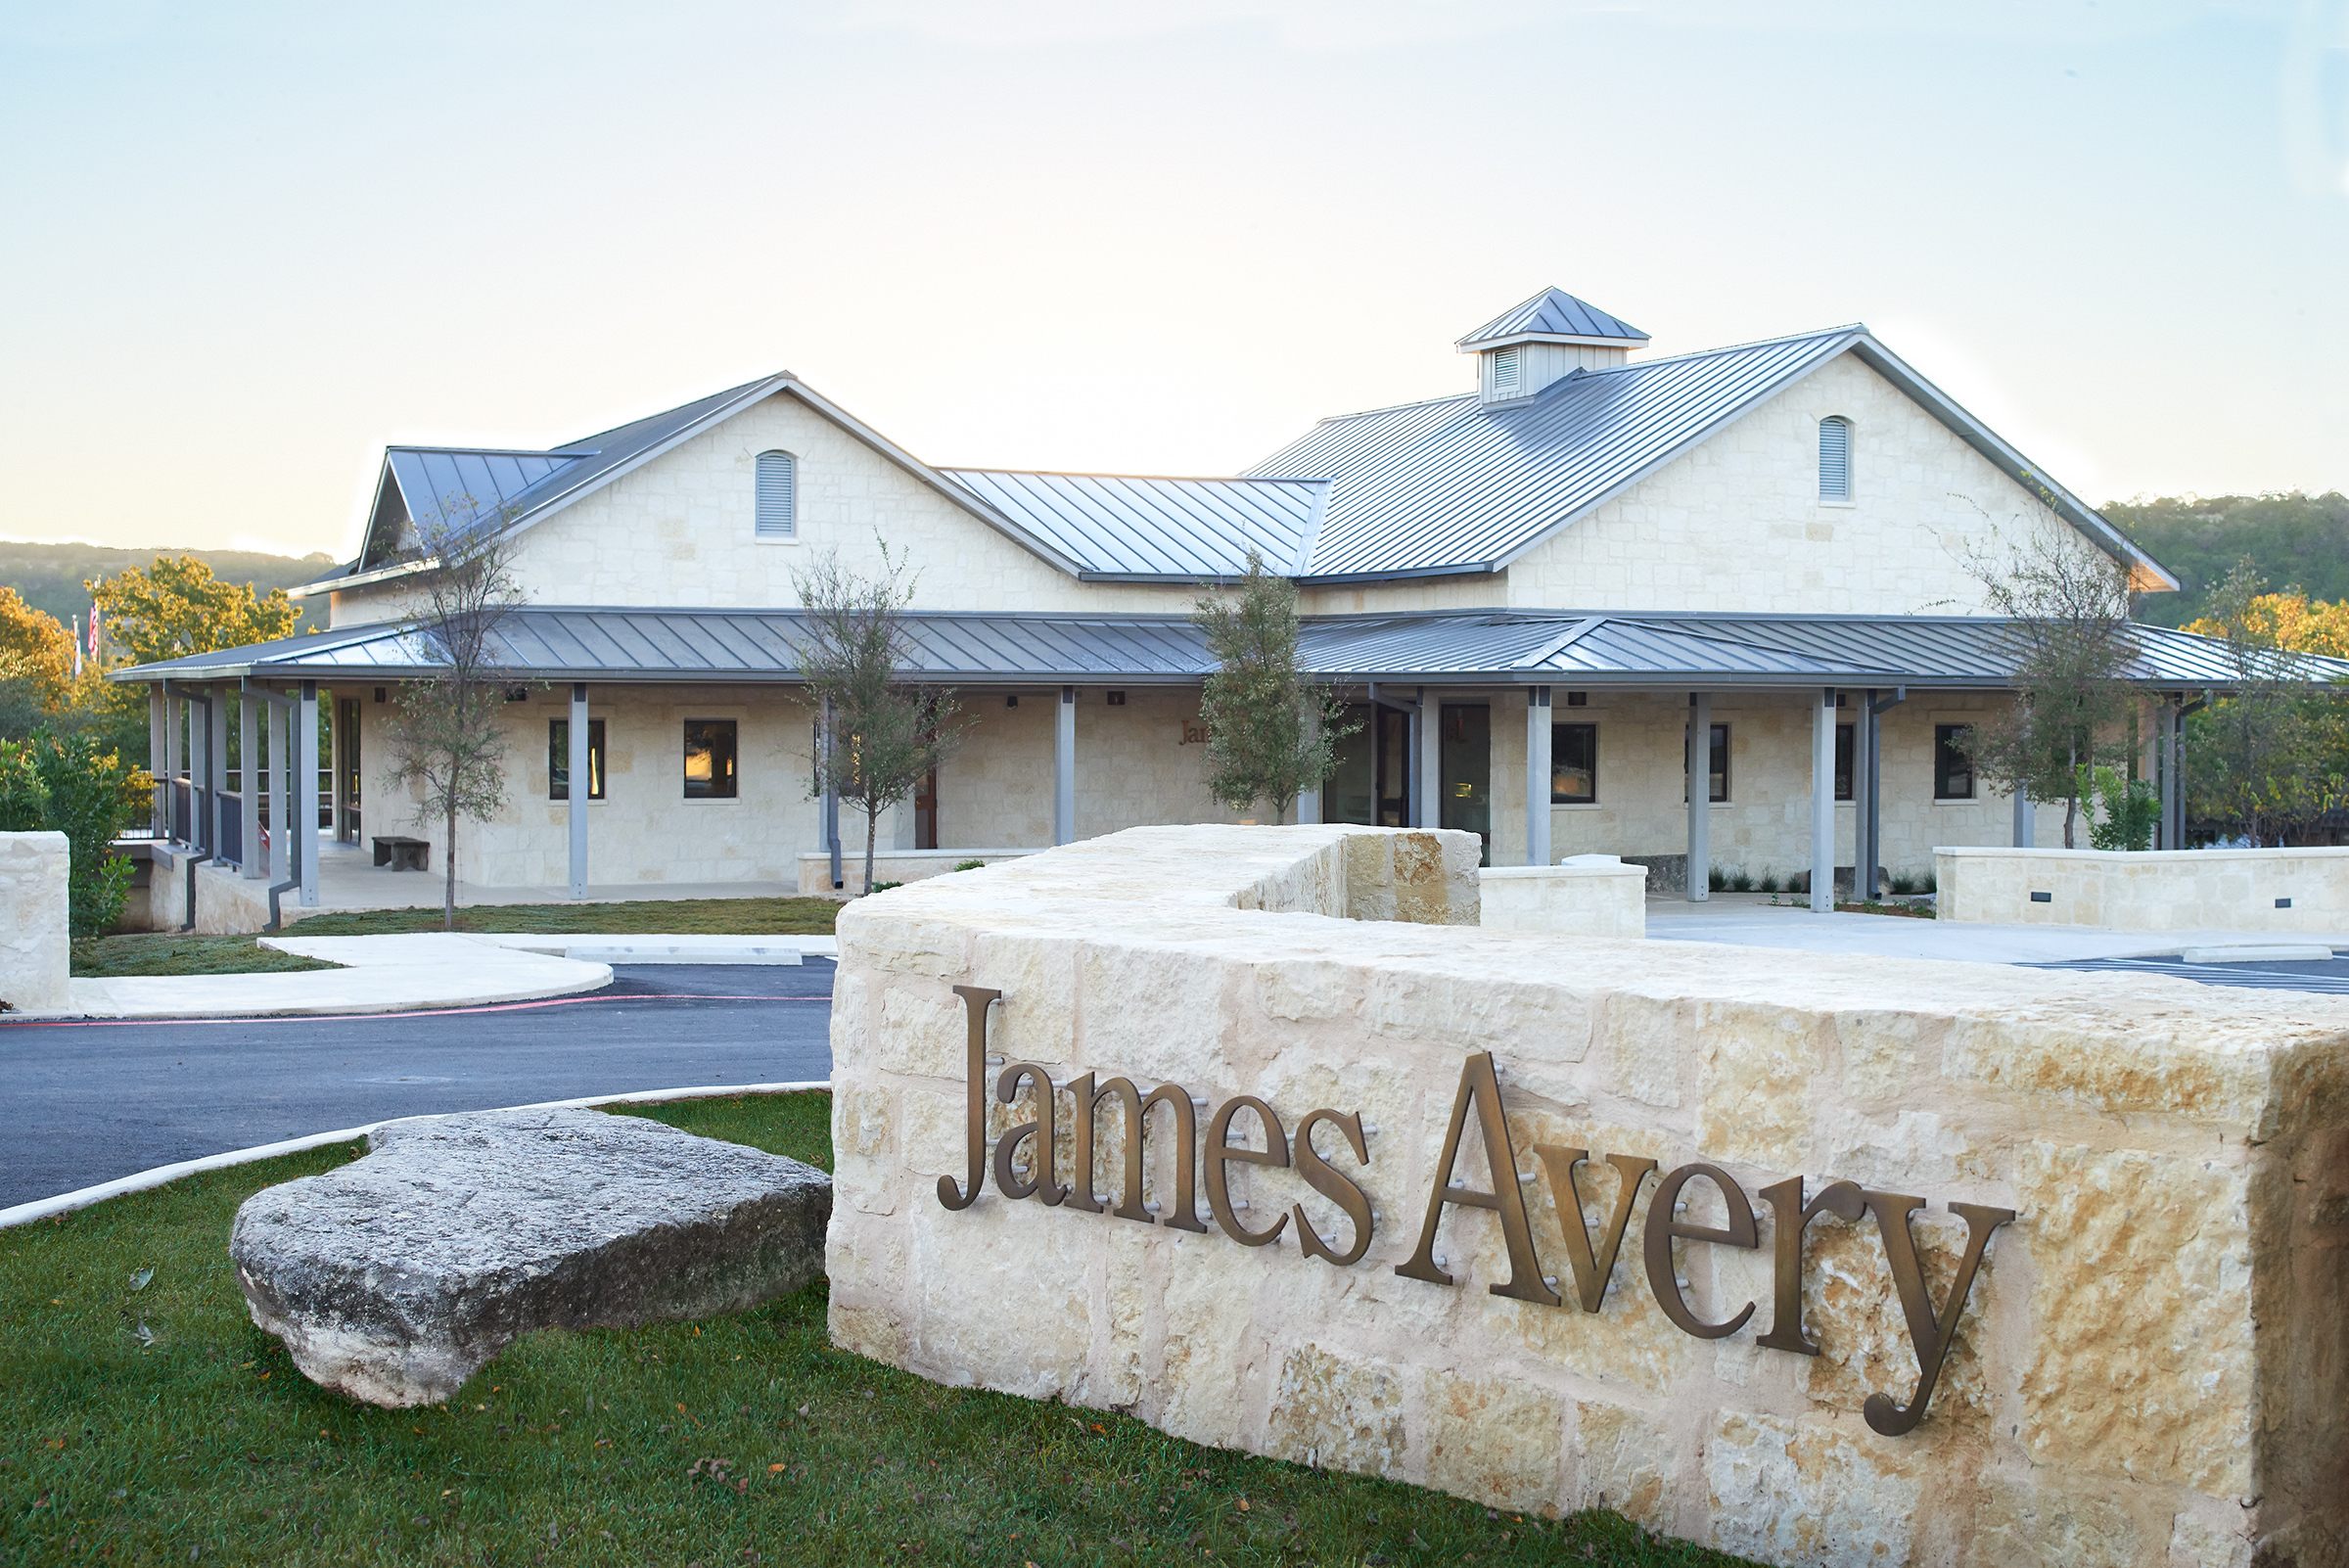 James Avery is a mid-priced men's & women's accessories store — primarily featuring classic jewelry. ShopSleuth found 47 men's & women's accessories stores similar to James Avery, out of our database of 45, total stores.